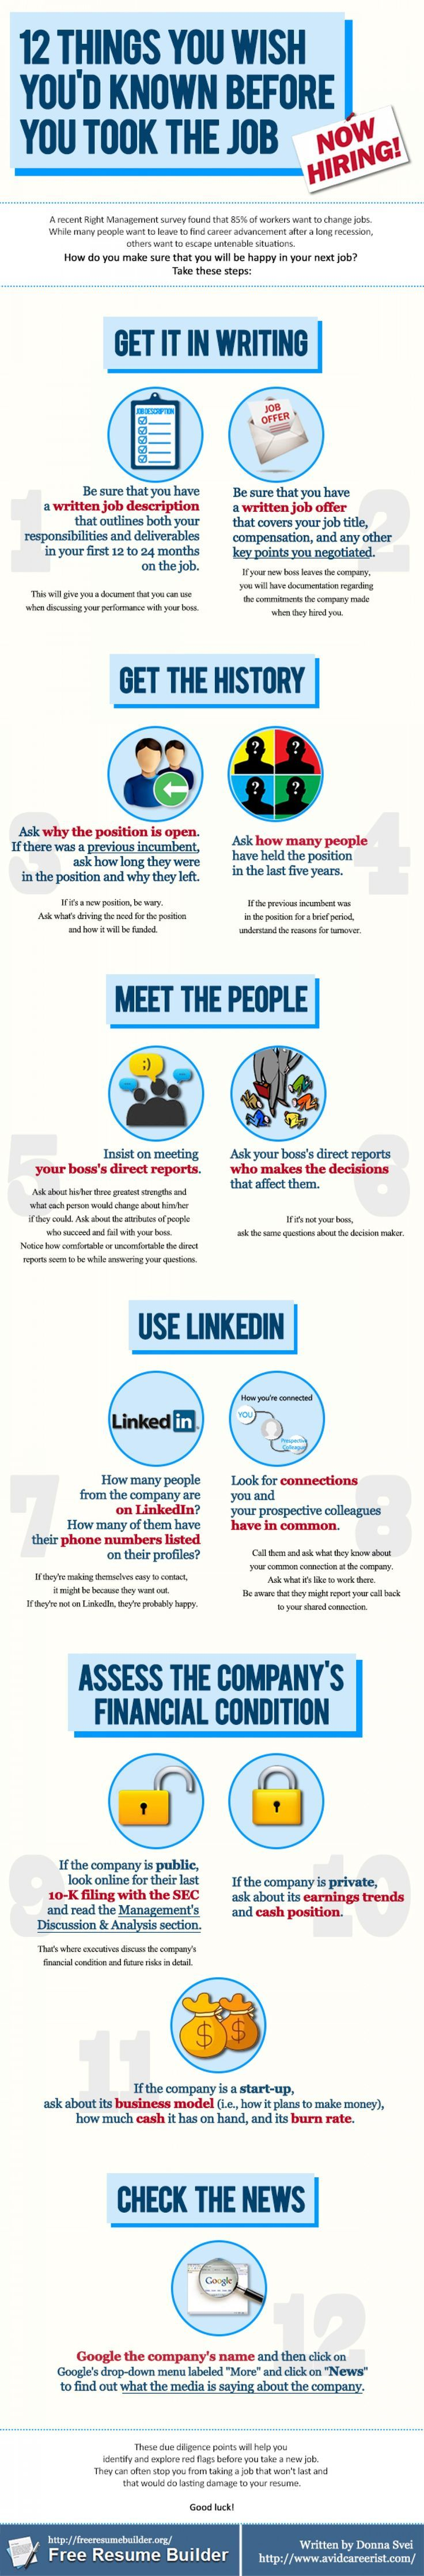 12 Things You Wish Youu0027d Known Before You Took That Job Infographic